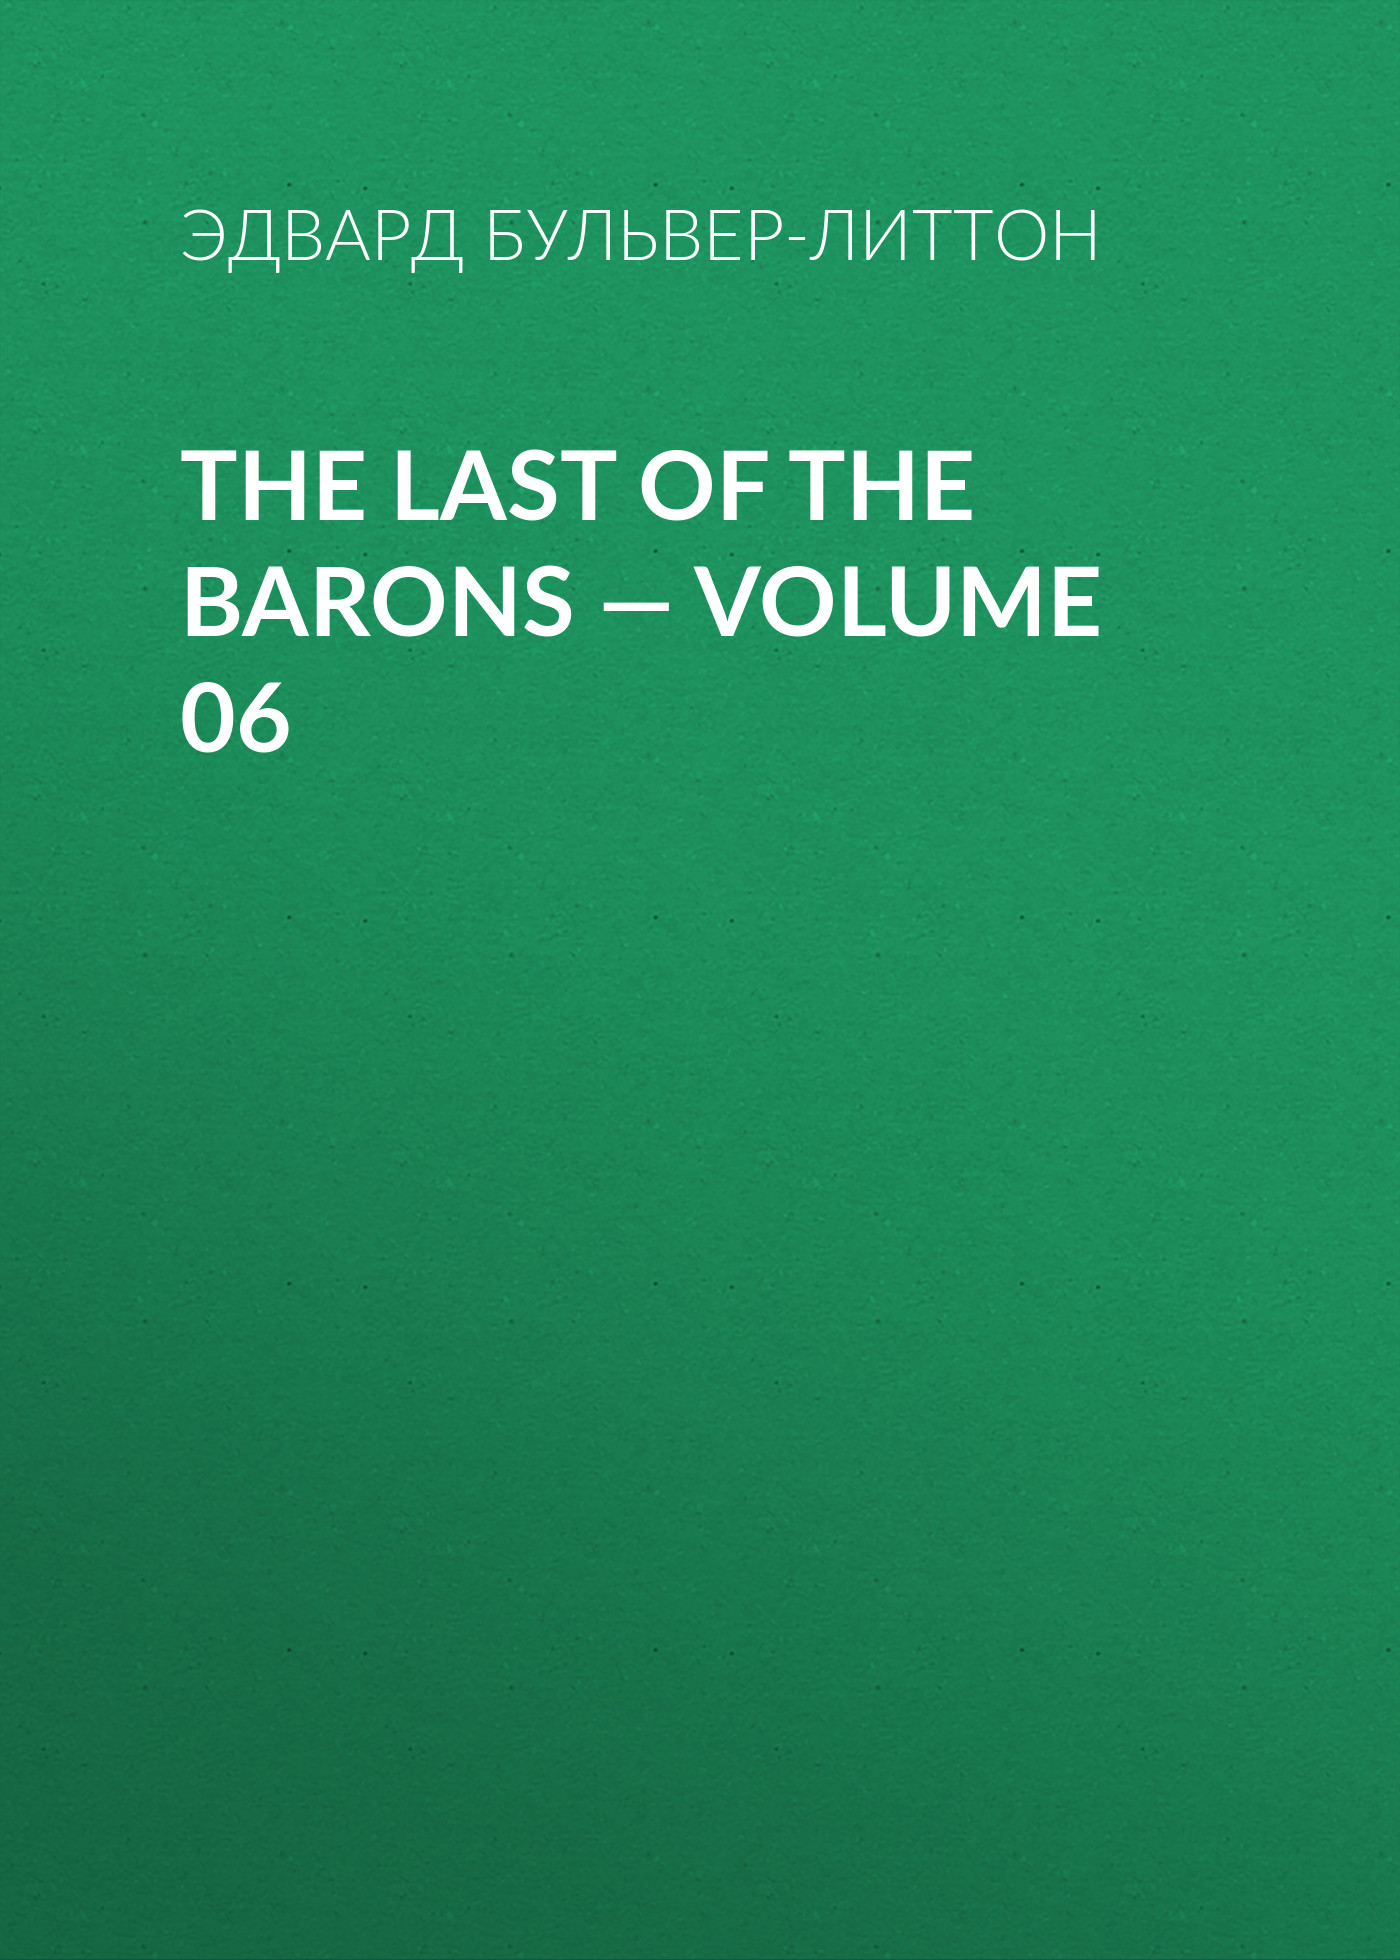 Эдвард Бульвер-Литтон The Last of the Barons — Volume 06 fayrene preston the barons of texas tess